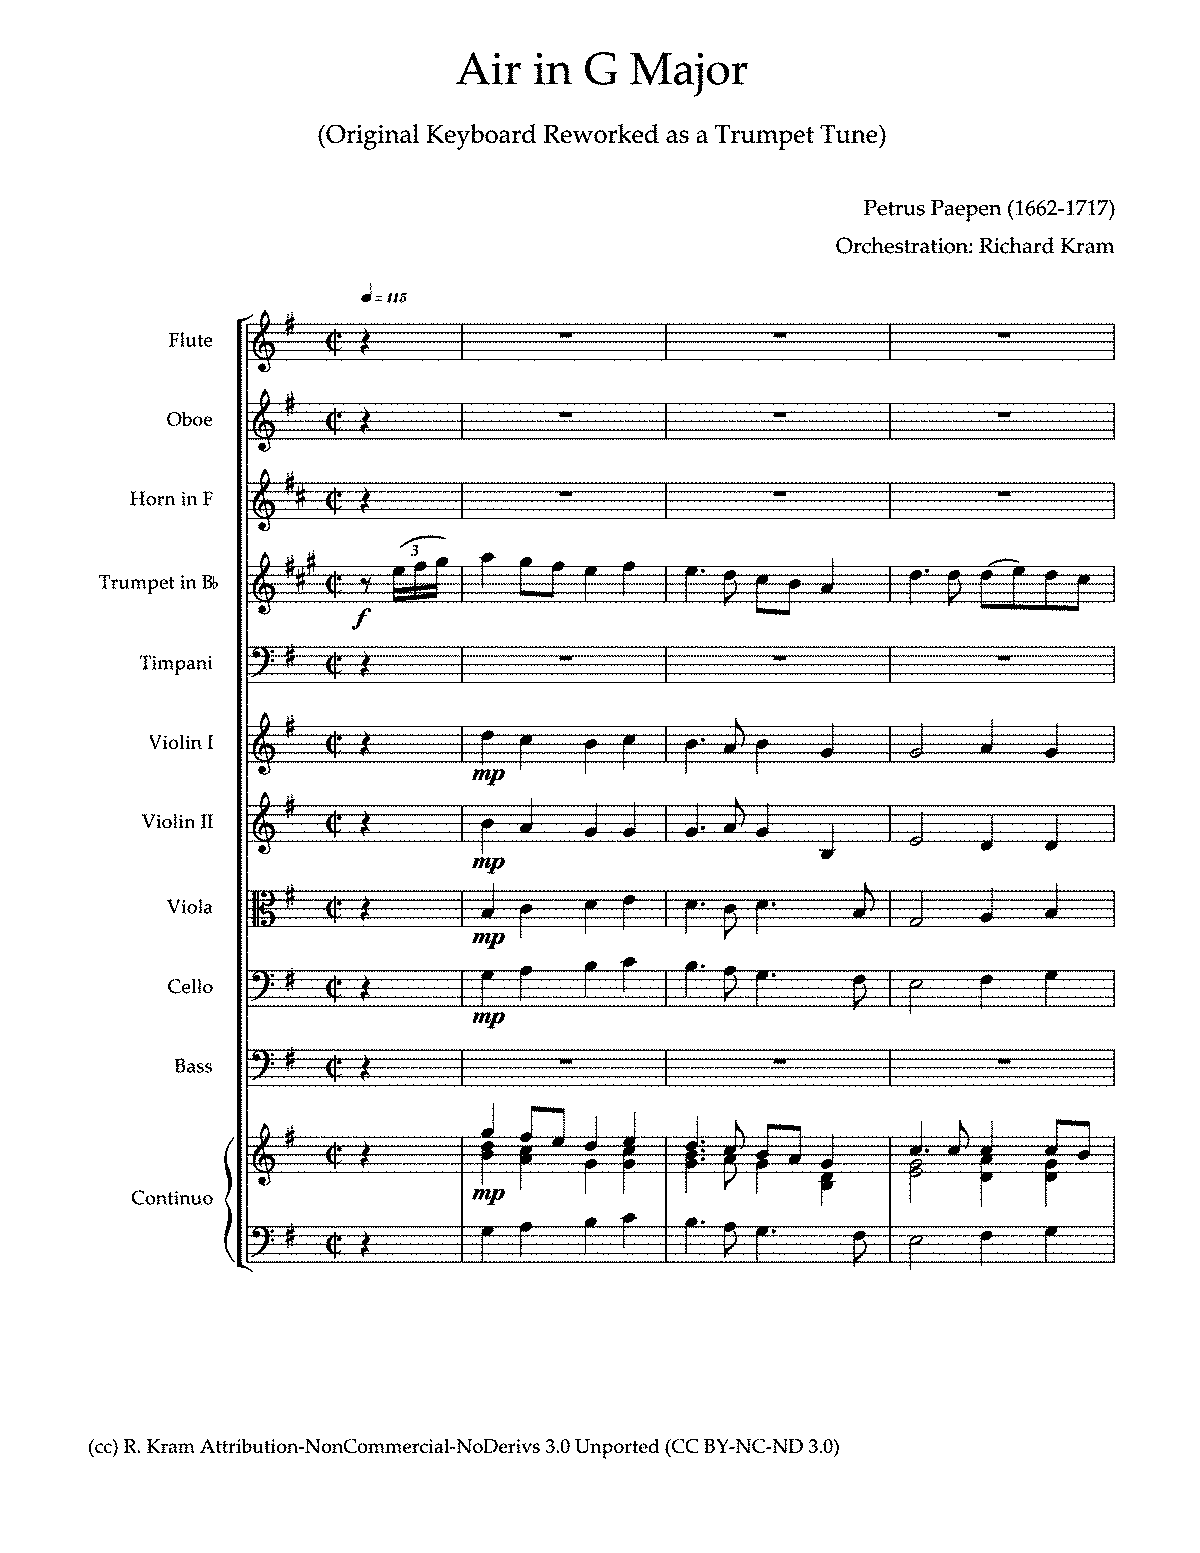 PMLP299357-Papen Aria in G Orch.pdf